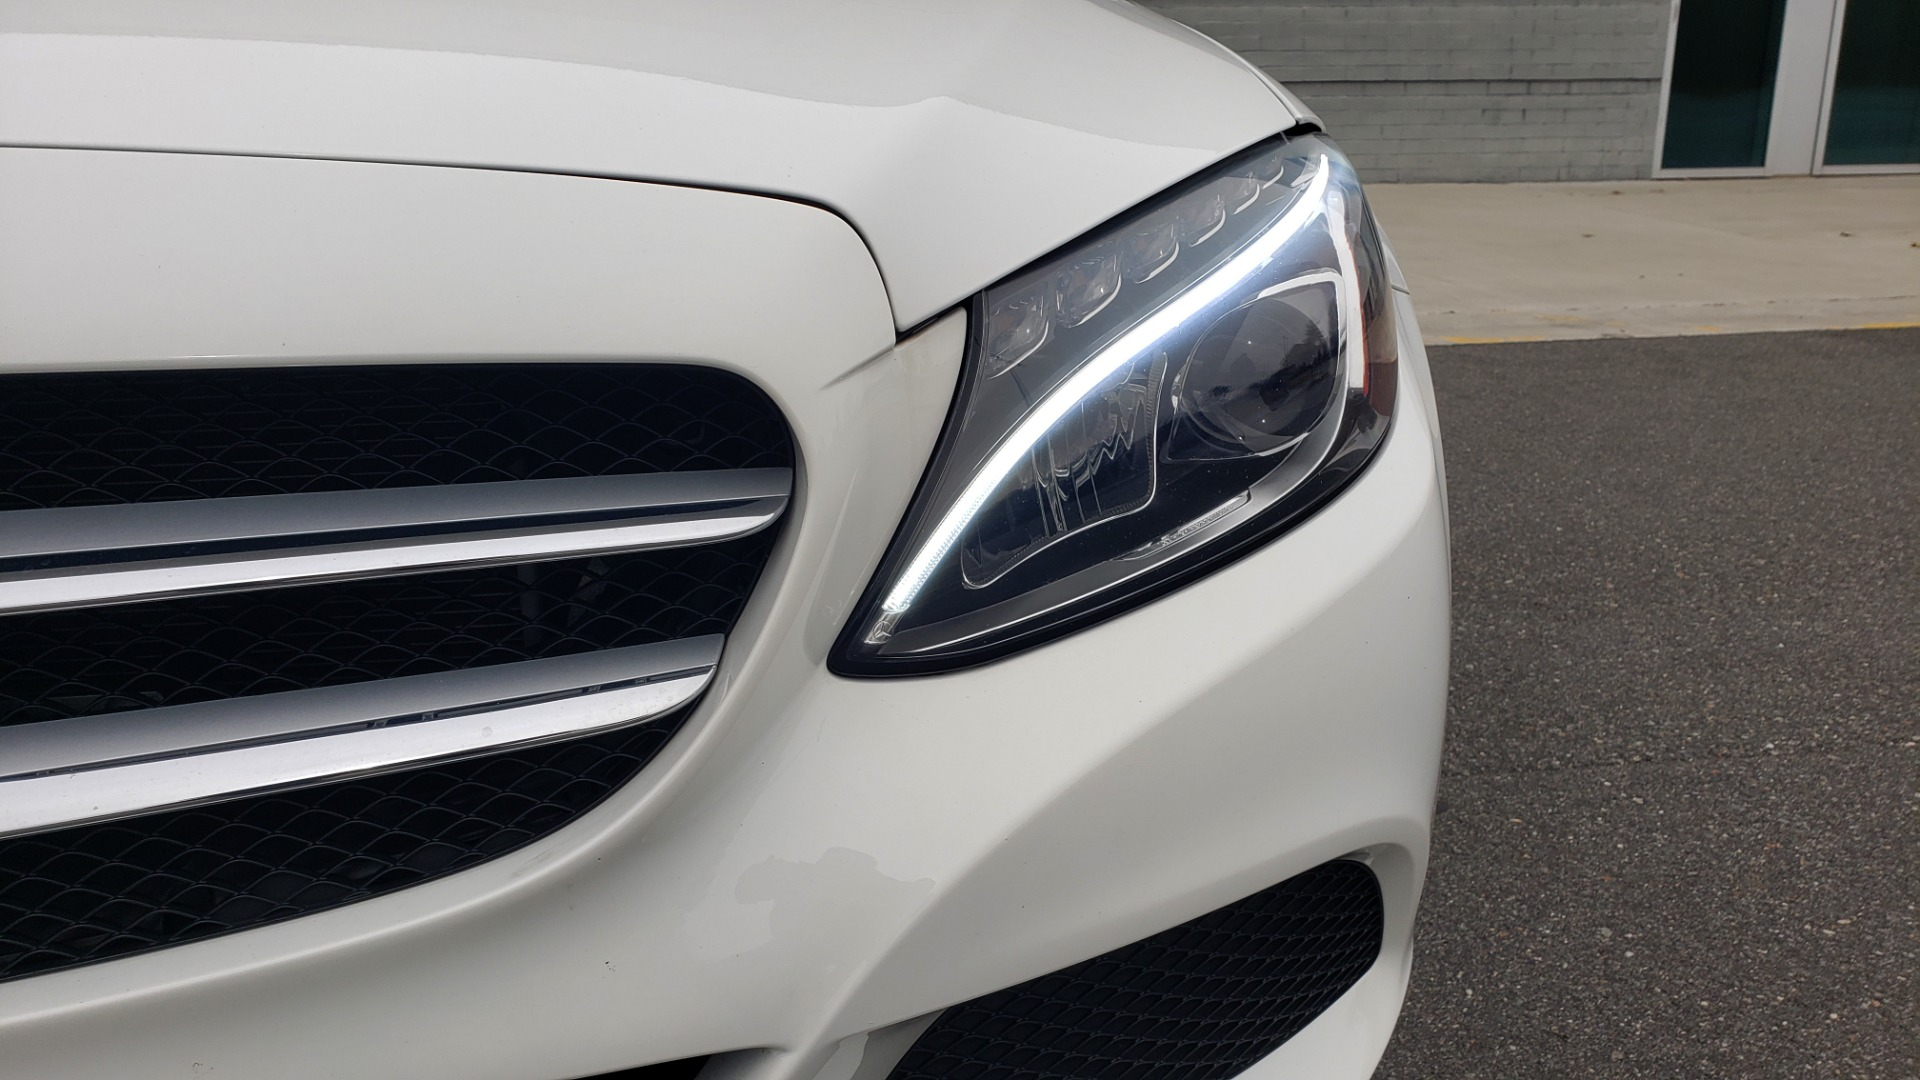 Used 2018 Mercedes-Benz C-CLASS C 300 PREMIUM / NAV / HTD STS / APPLY CARPLAY / REARVIEW for sale $26,695 at Formula Imports in Charlotte NC 28227 22